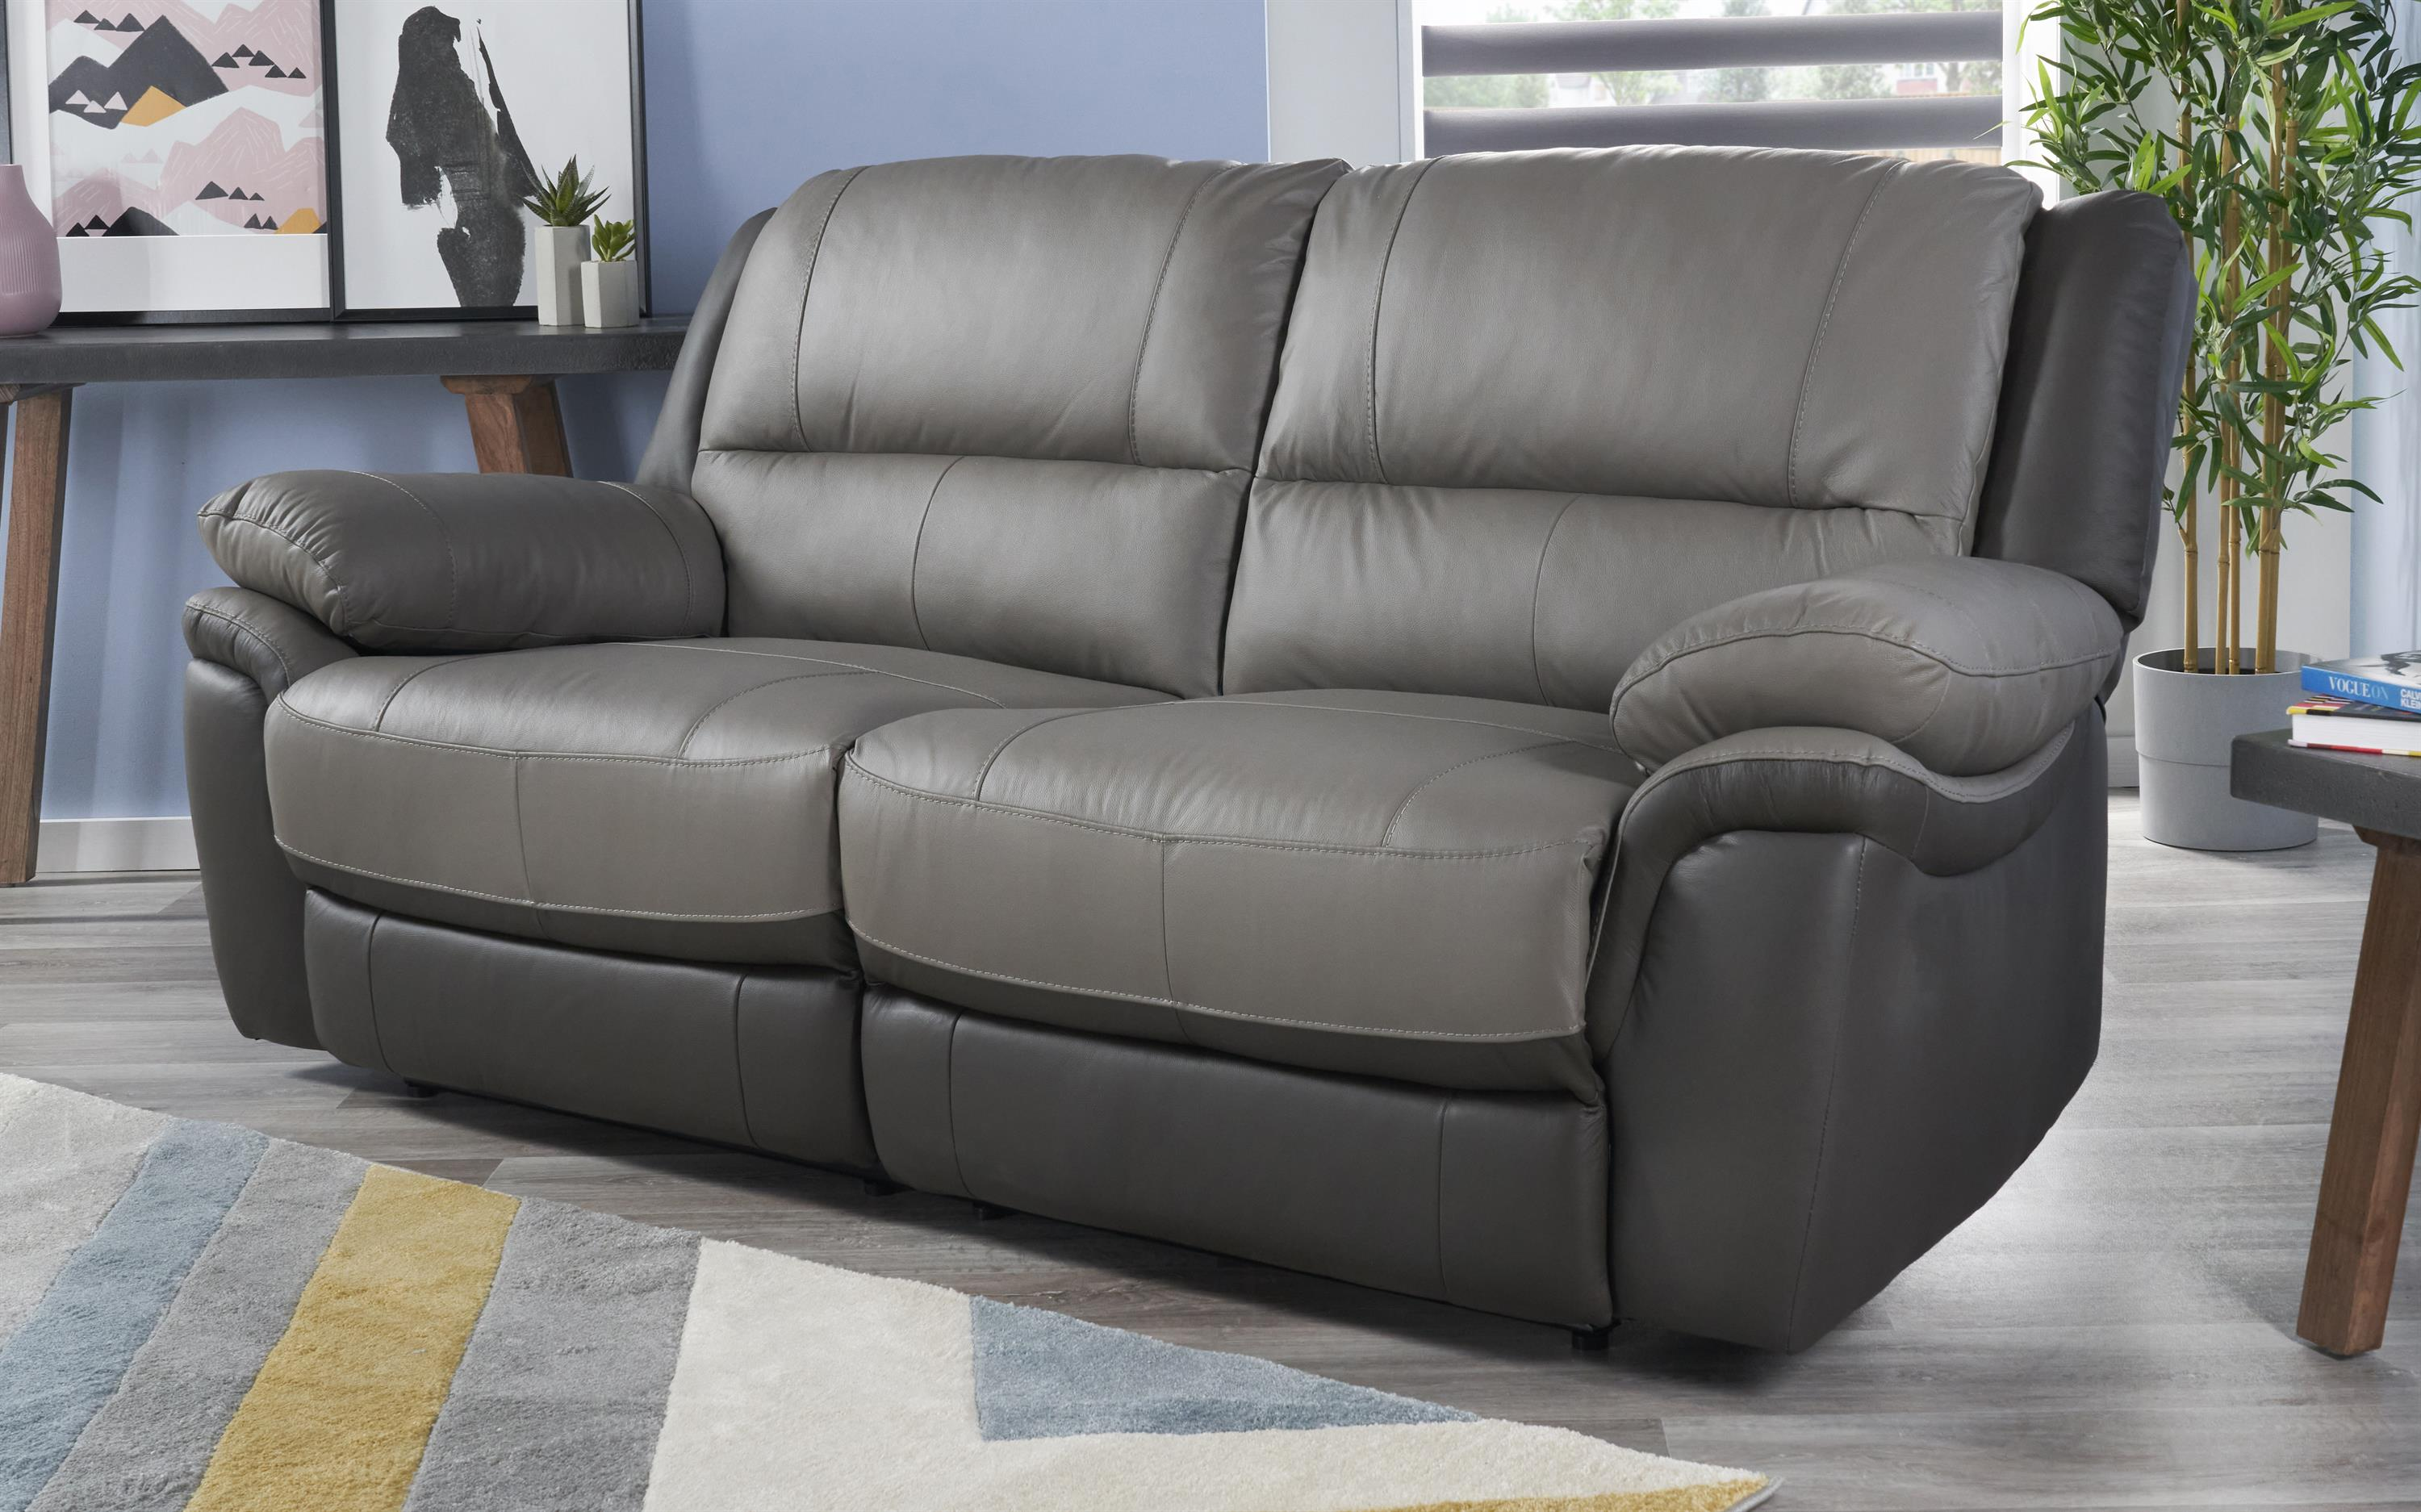 Pluto 3 Seater Static Sofa